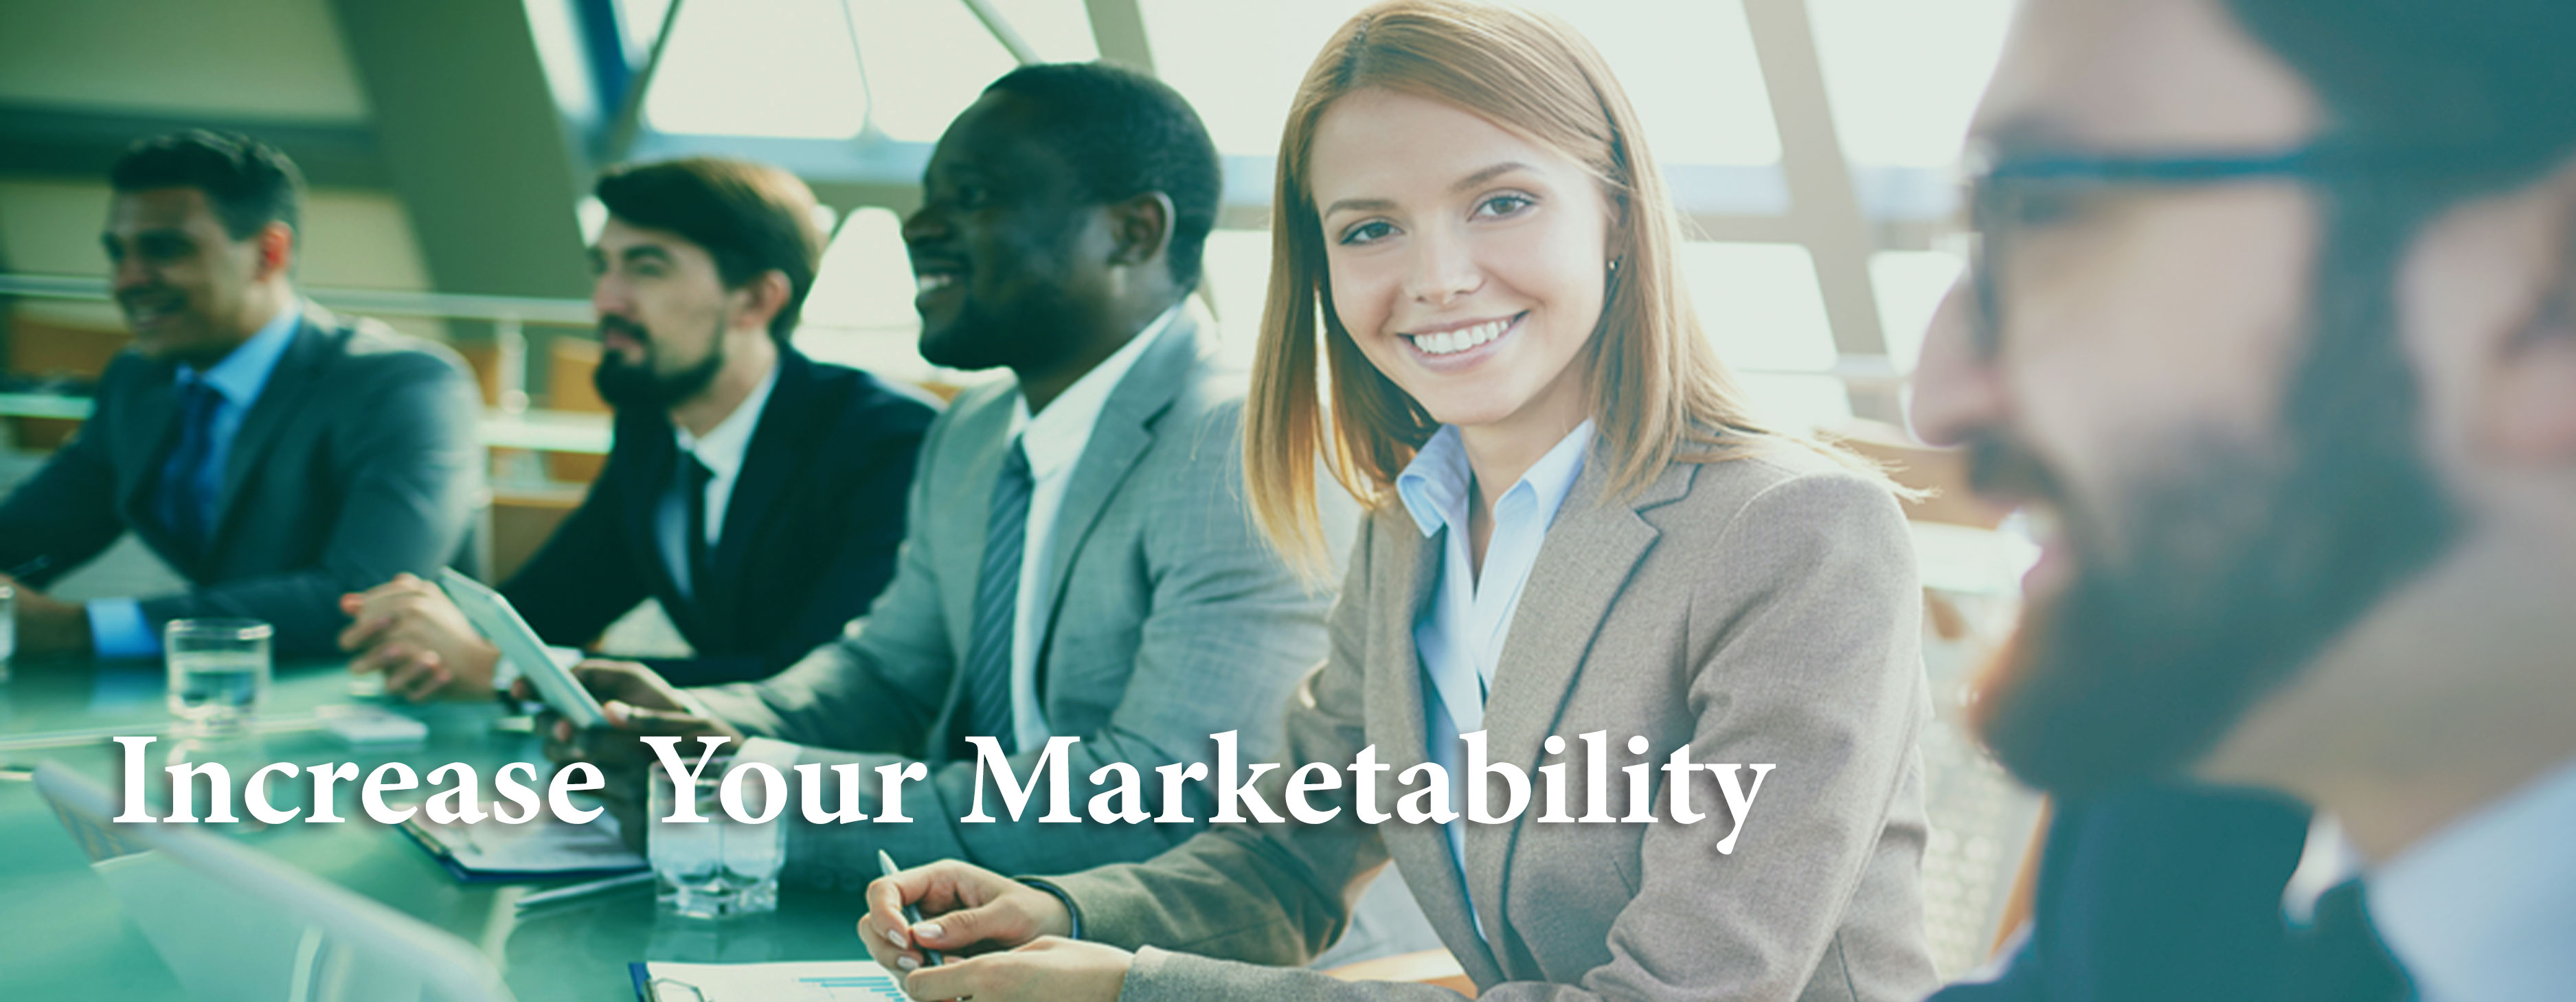 IncreaseMarketability